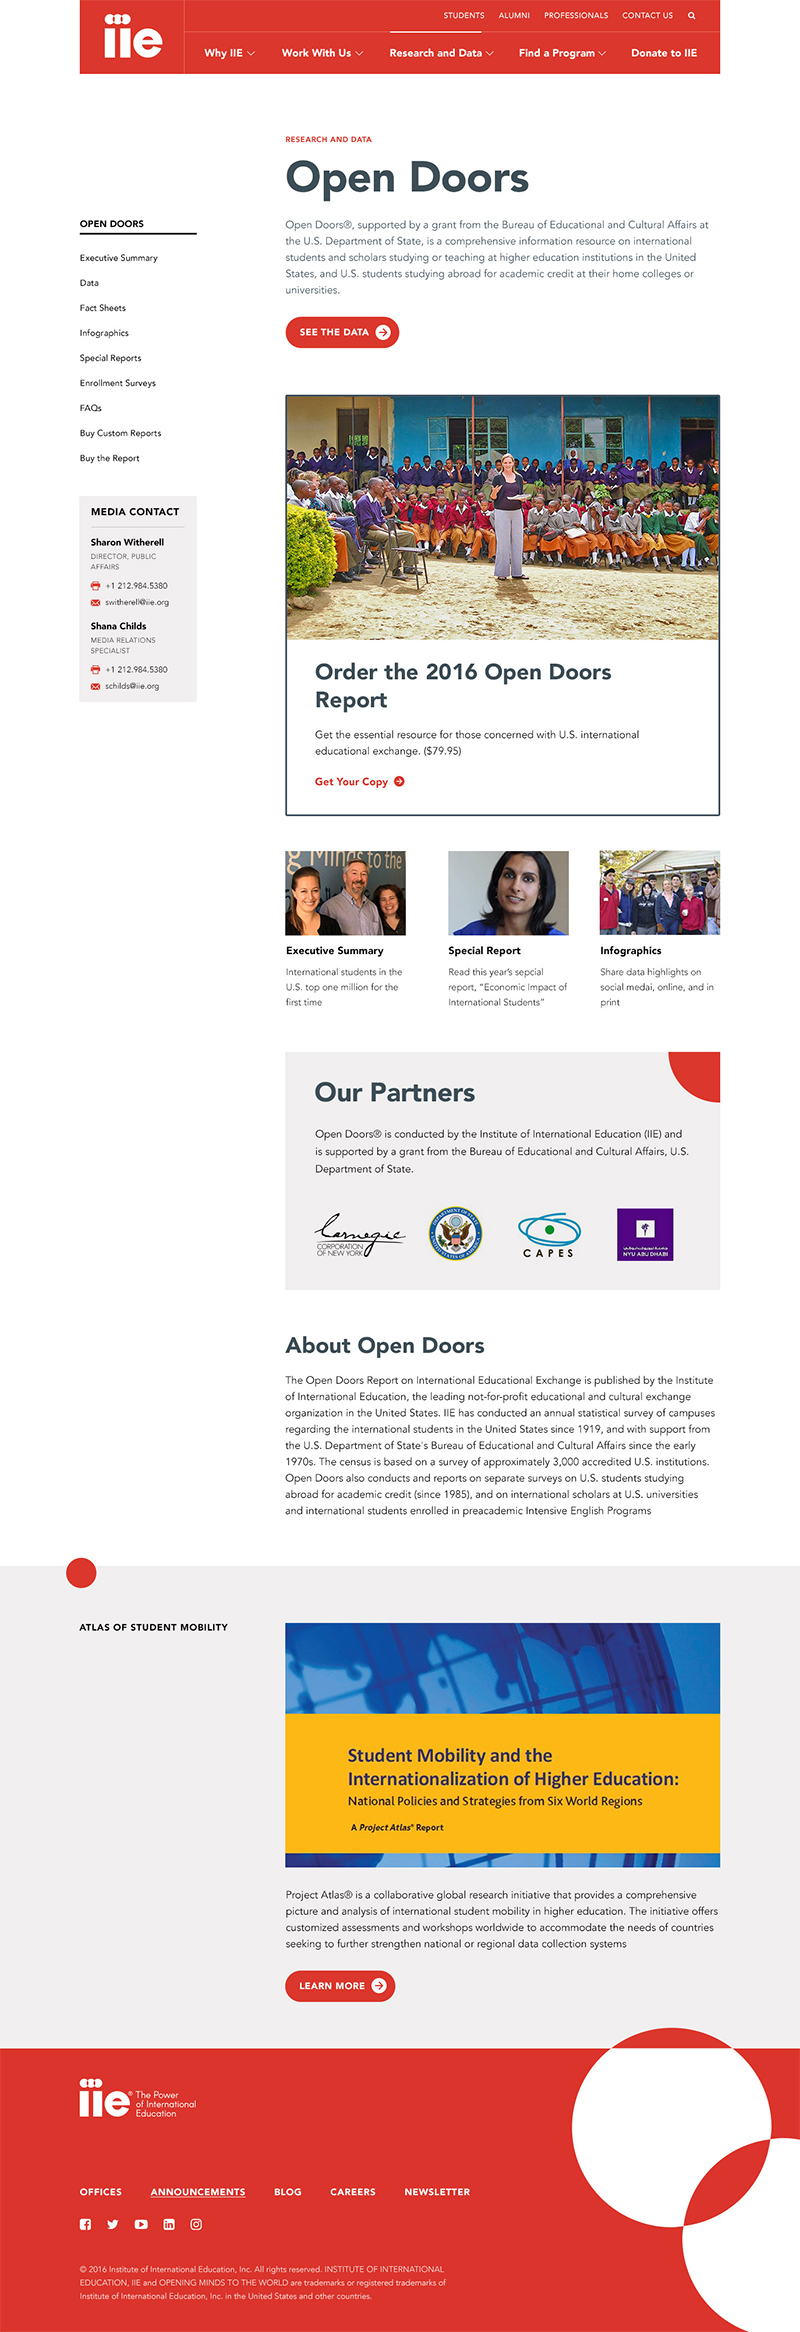 IIE Open Doors website page